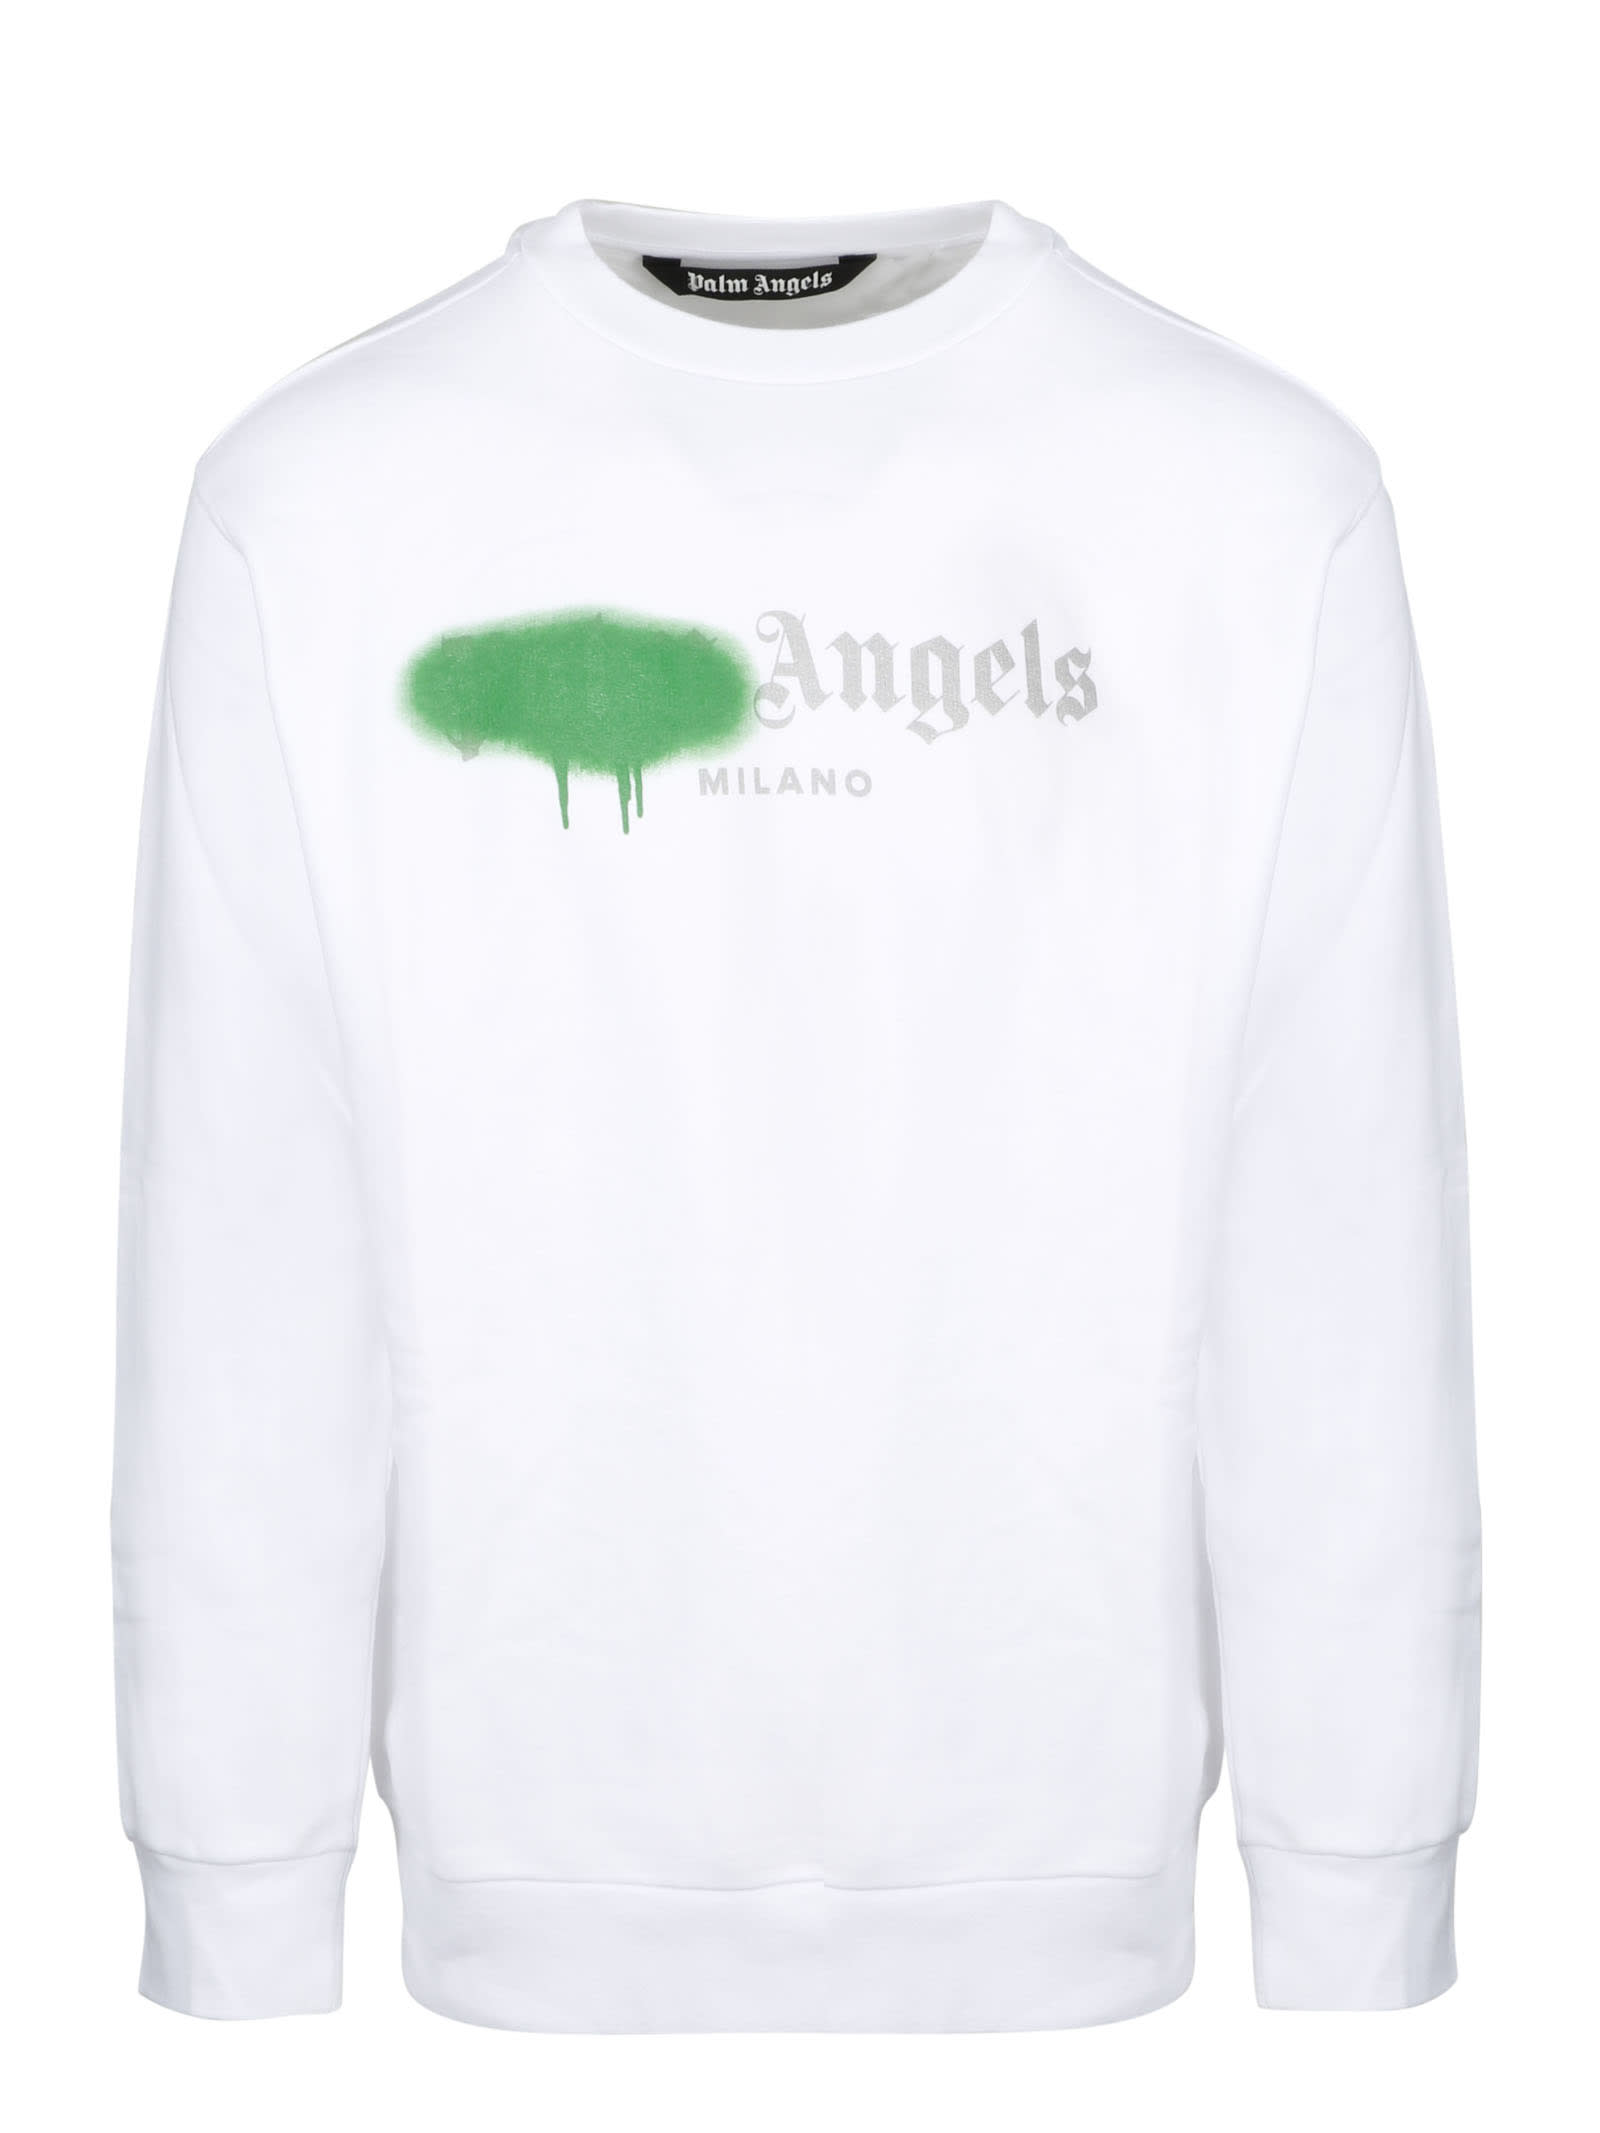 Palm Angels Milano Sprayed Logo Sweatshirt